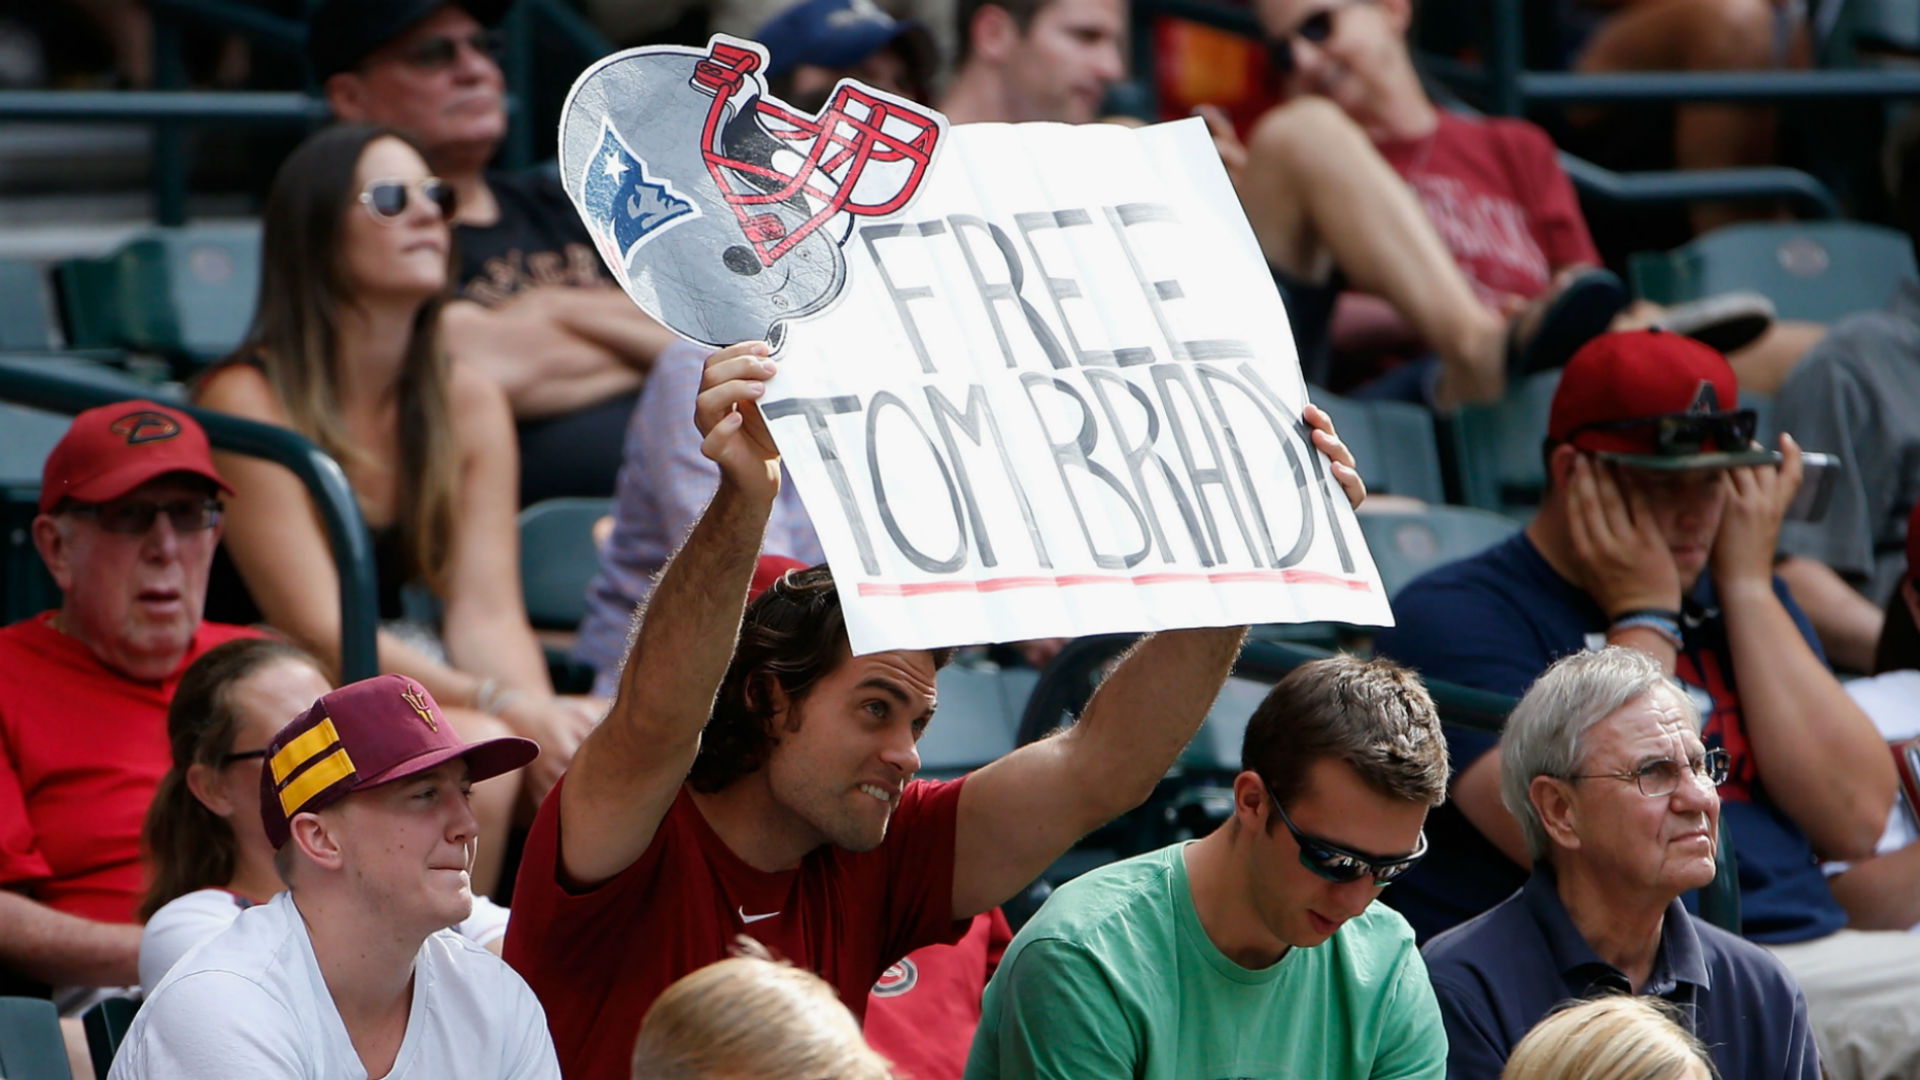 Patriots fans to hold 'Free Tom Brady' rally at Gillette Stadium